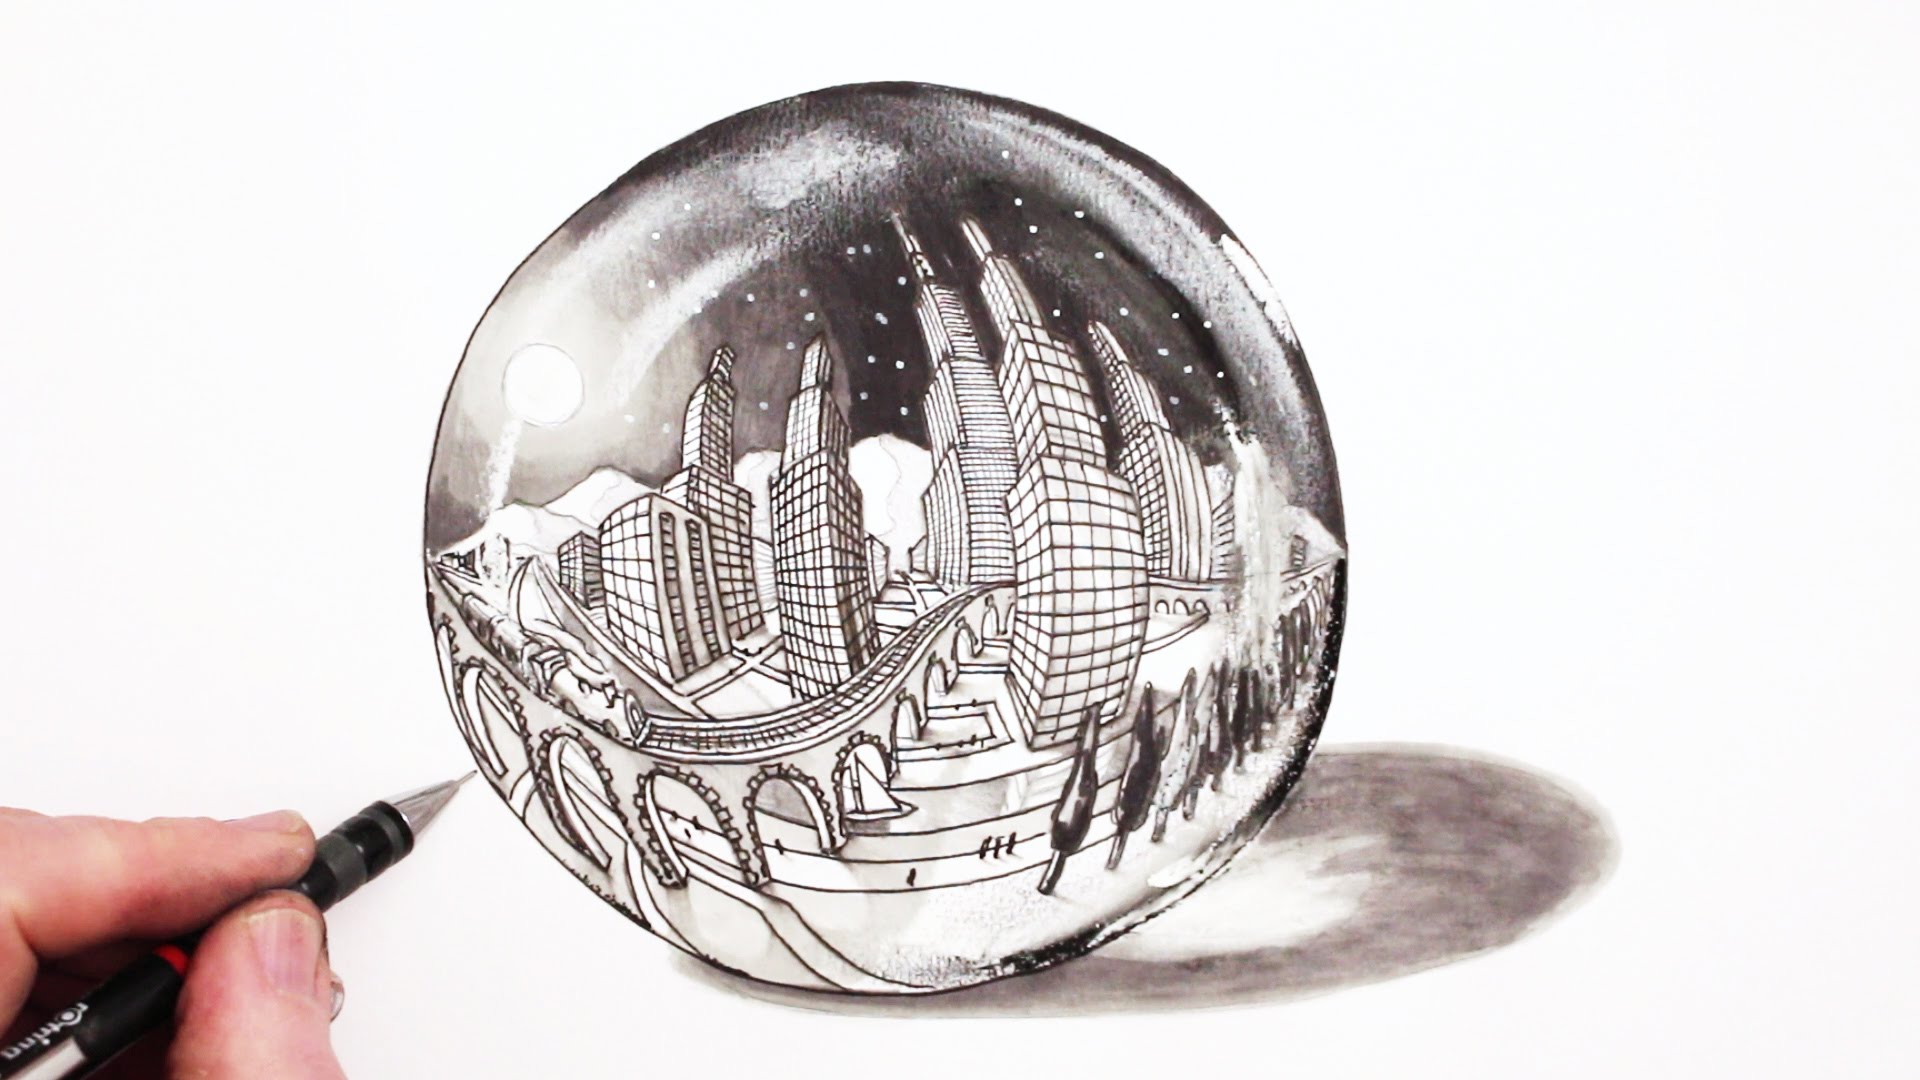 Drawn spheric crystal ball YouTube to 5 in City